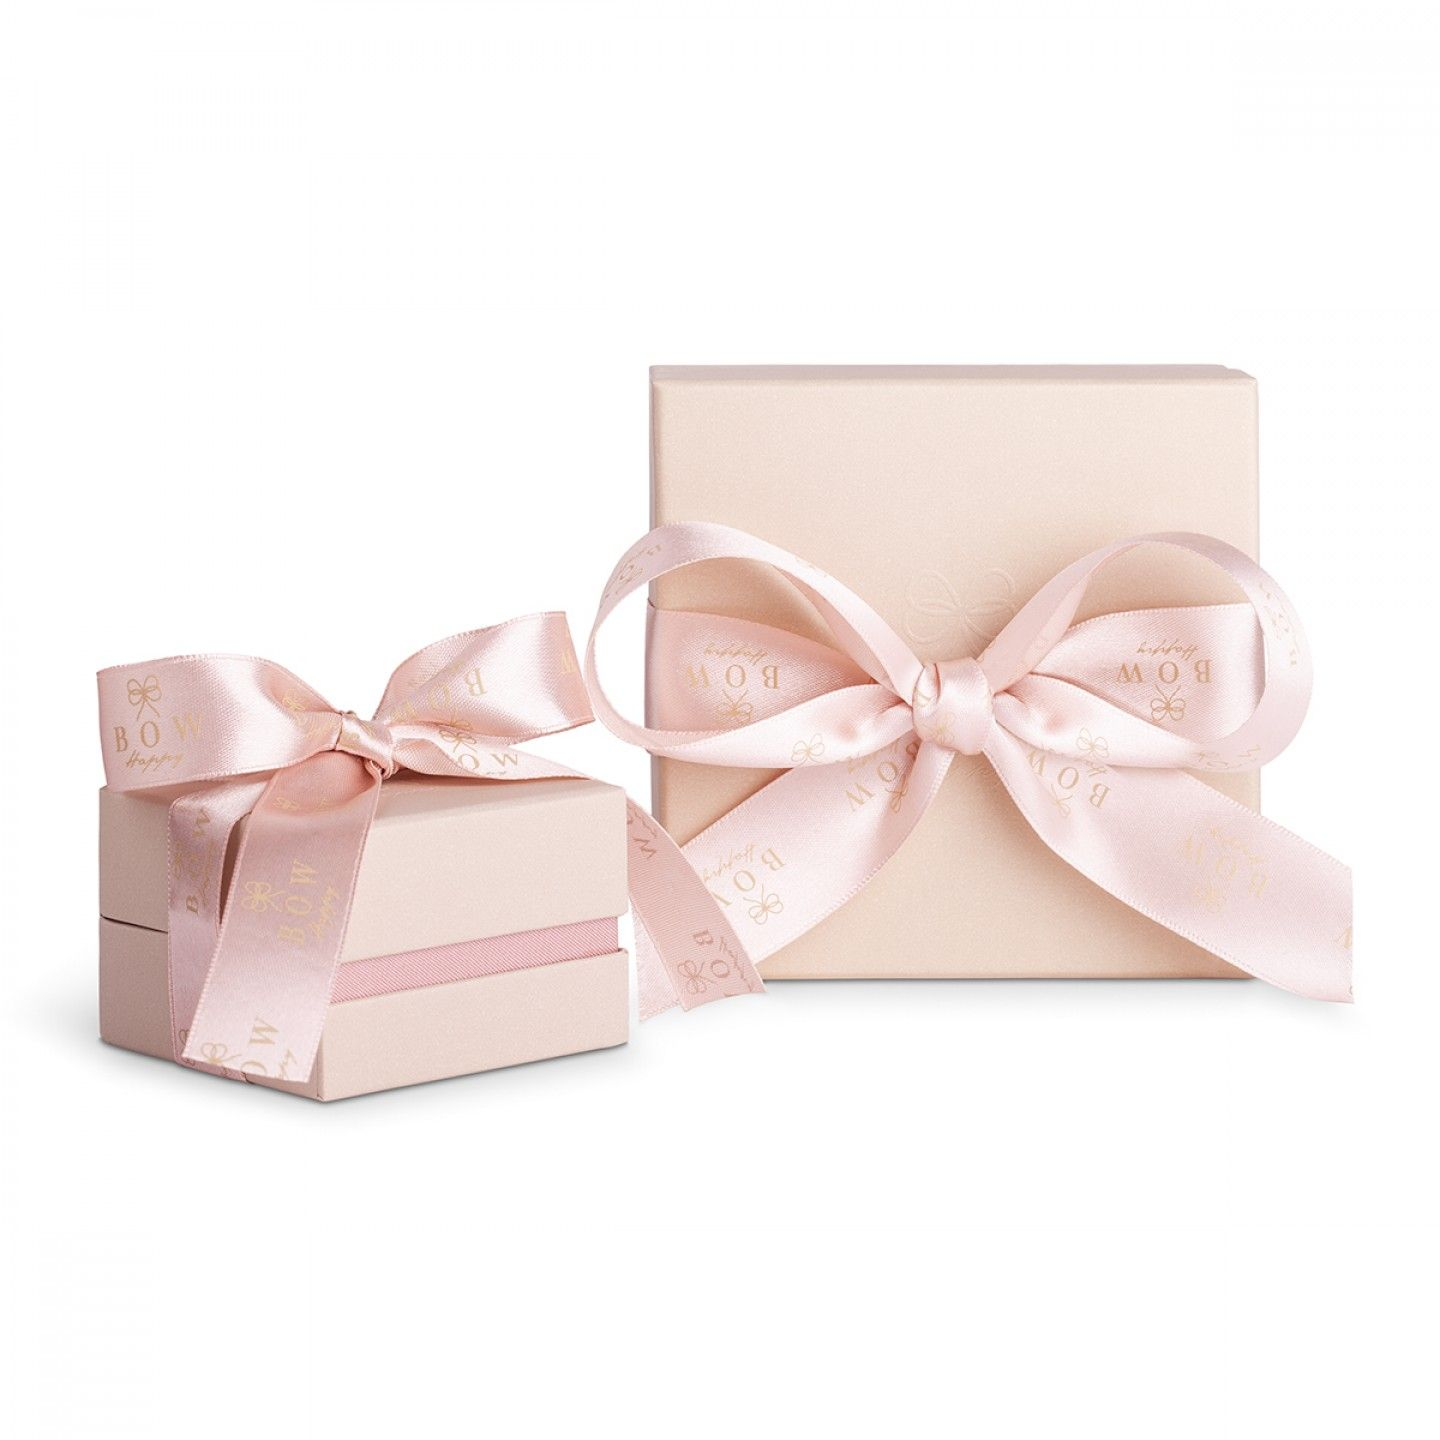 Charm BOW HAPPY Love Stories Good Luck